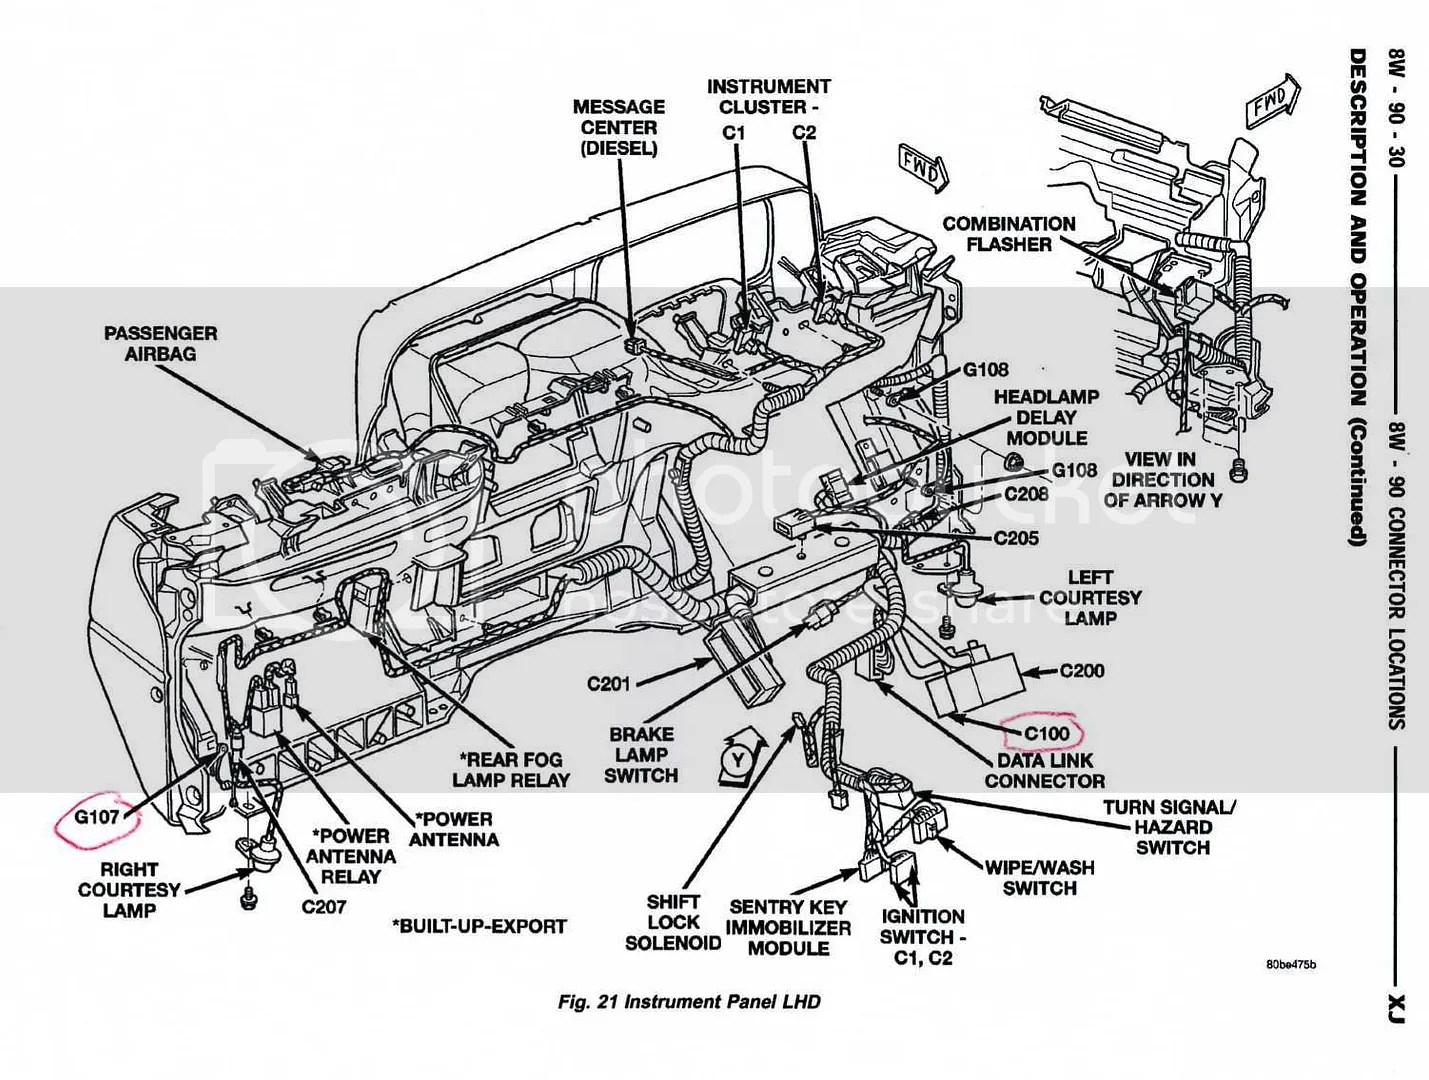 Jeep Wrangler Dash Wiring Diagram : 33 Wiring Diagram